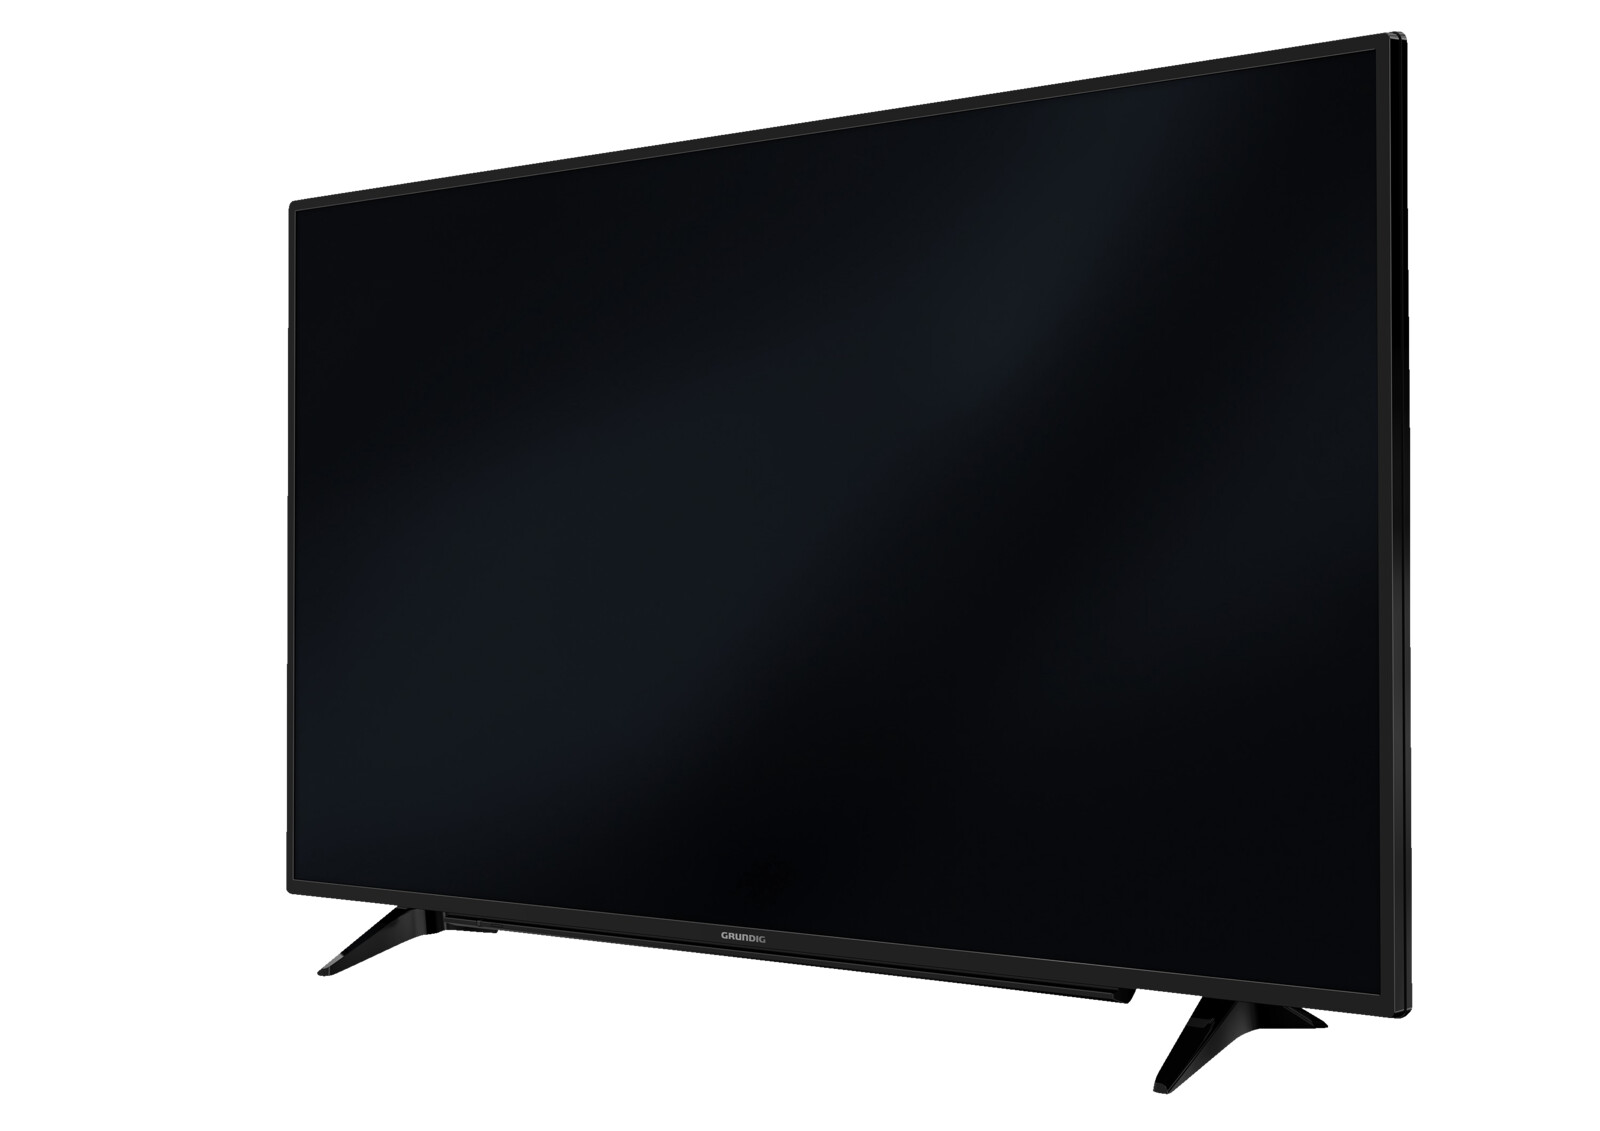 grundig 43 gub 8862 led tv flat 43 zoll uhd 4k smart. Black Bedroom Furniture Sets. Home Design Ideas